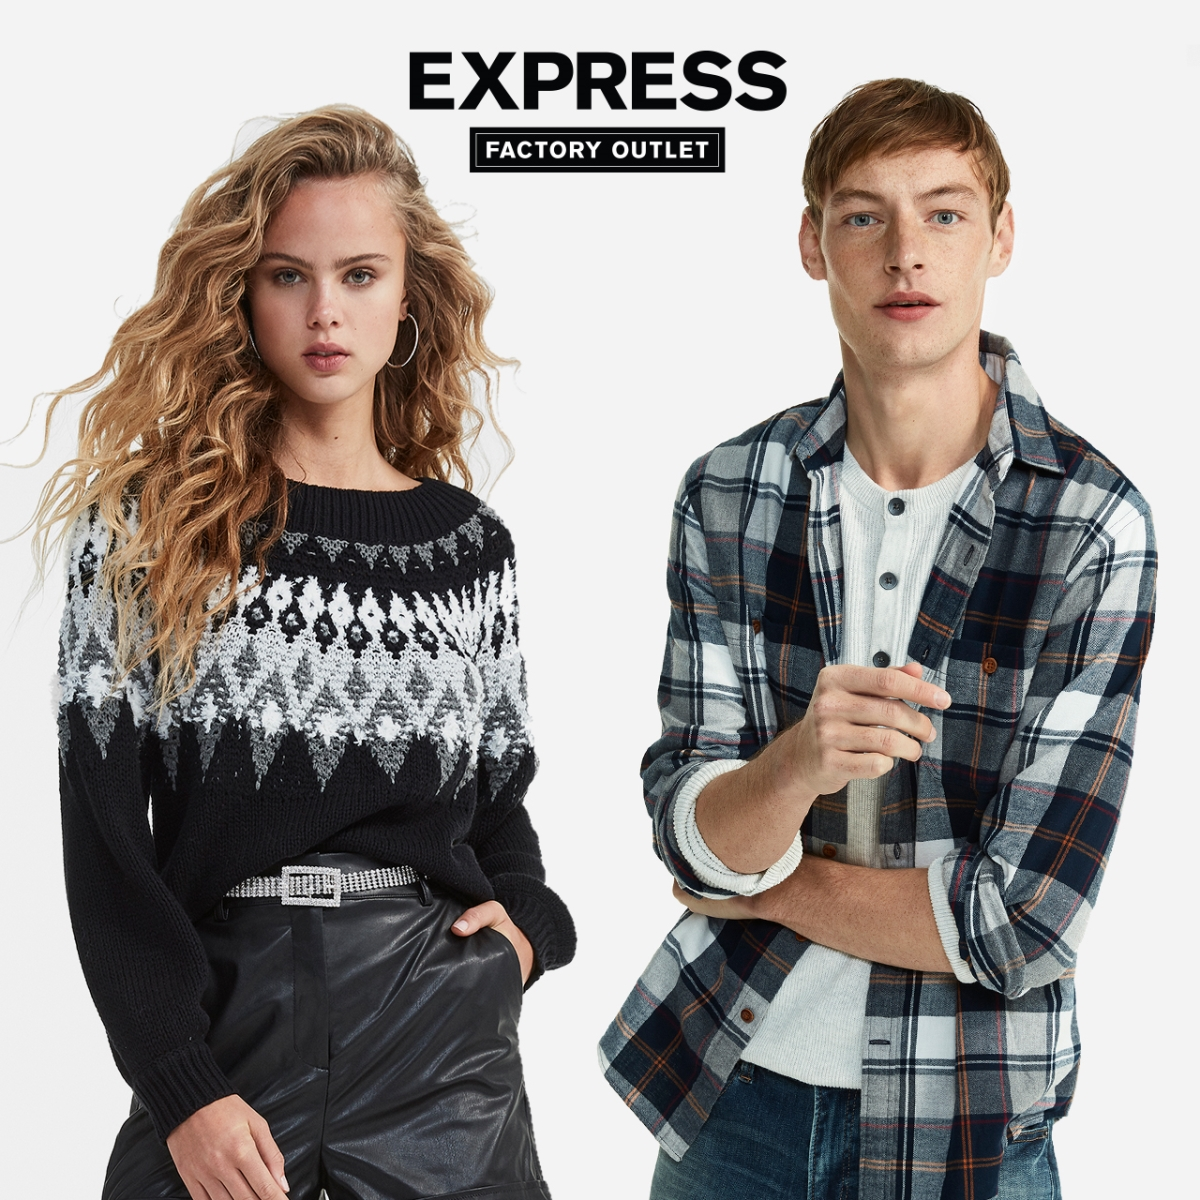 15% Off Your Purchase of $100+ from Express